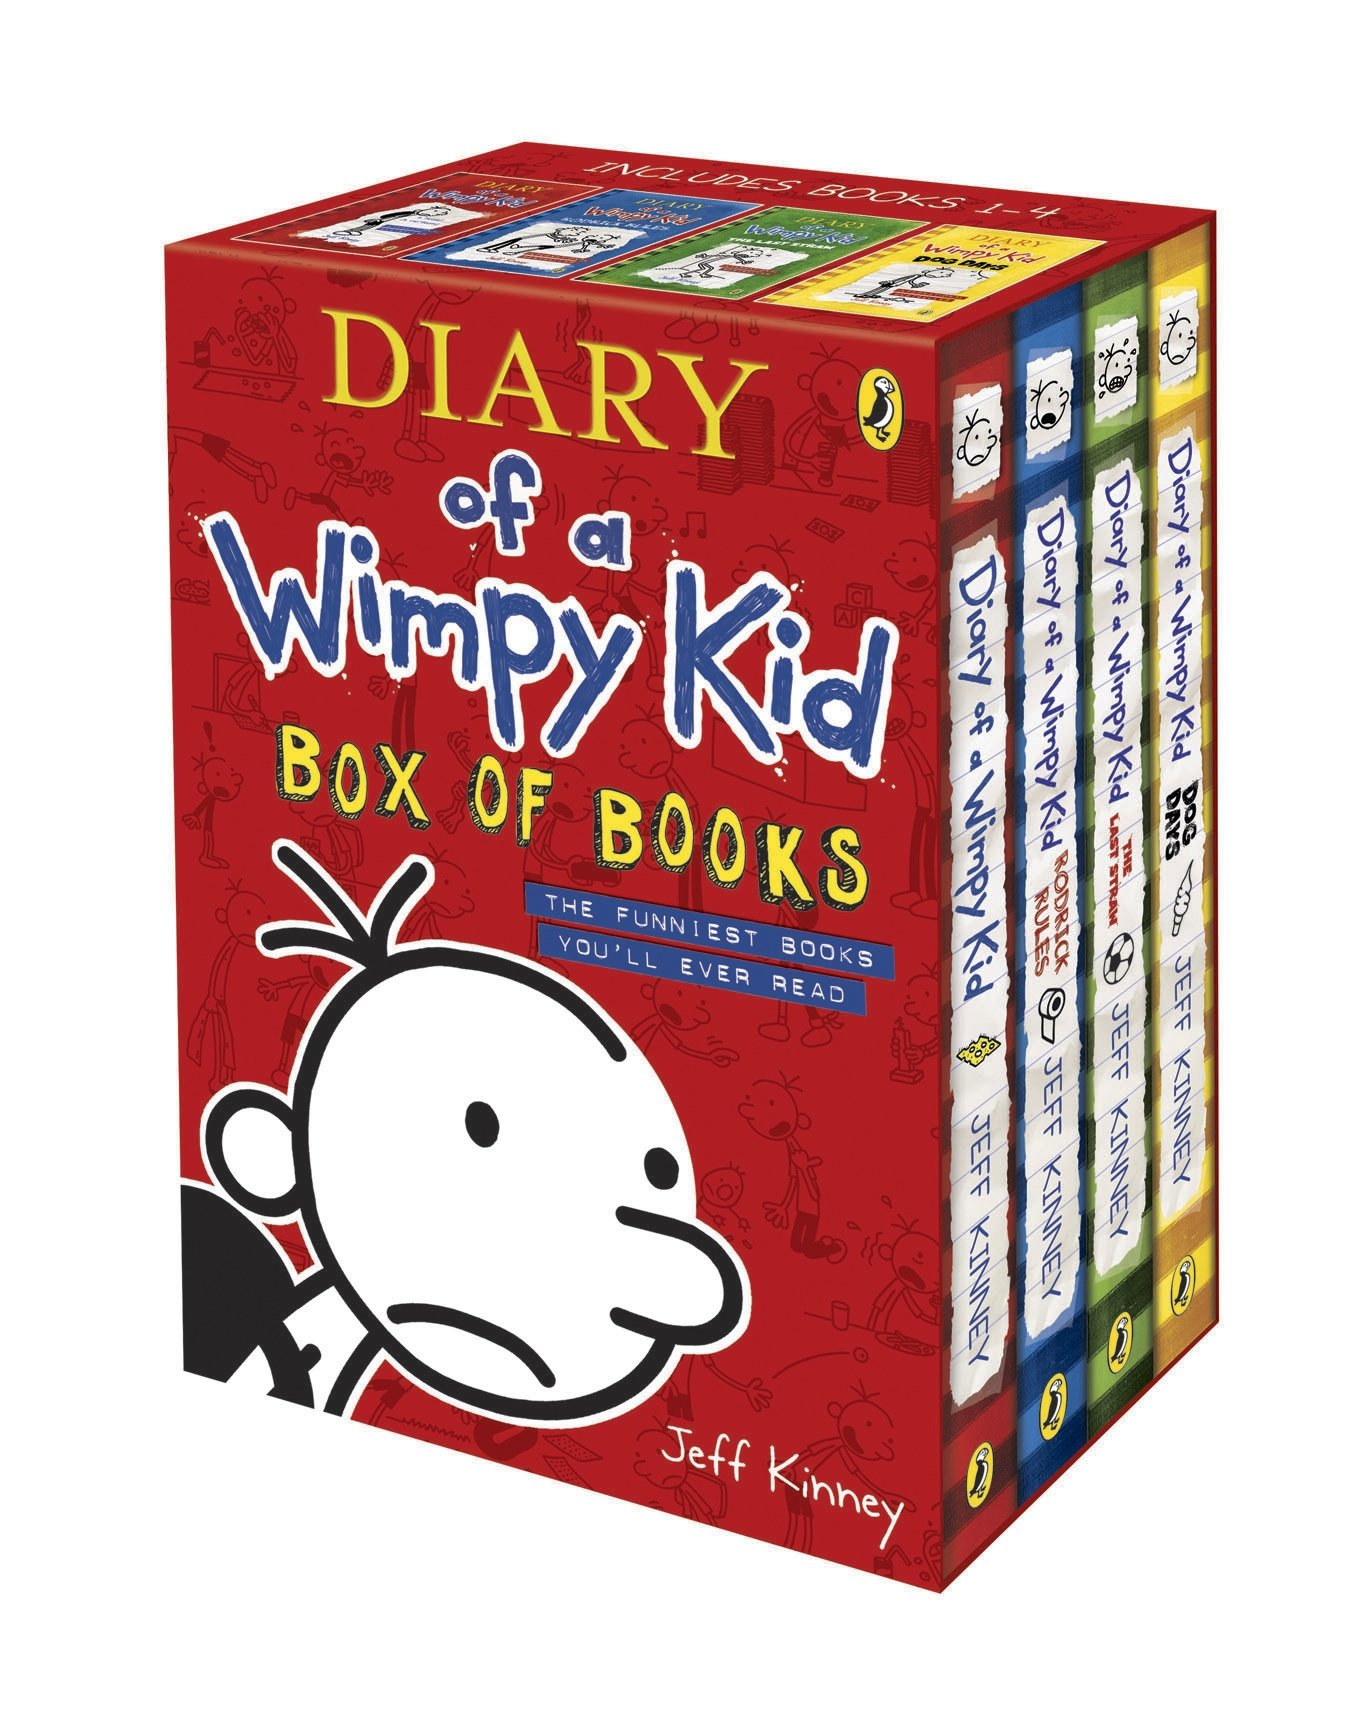 Diary of a wimpy kid box of books amazon jeff kinney diary of a wimpy kid box of books amazon jeff kinney 9780141341415 books solutioingenieria Image collections